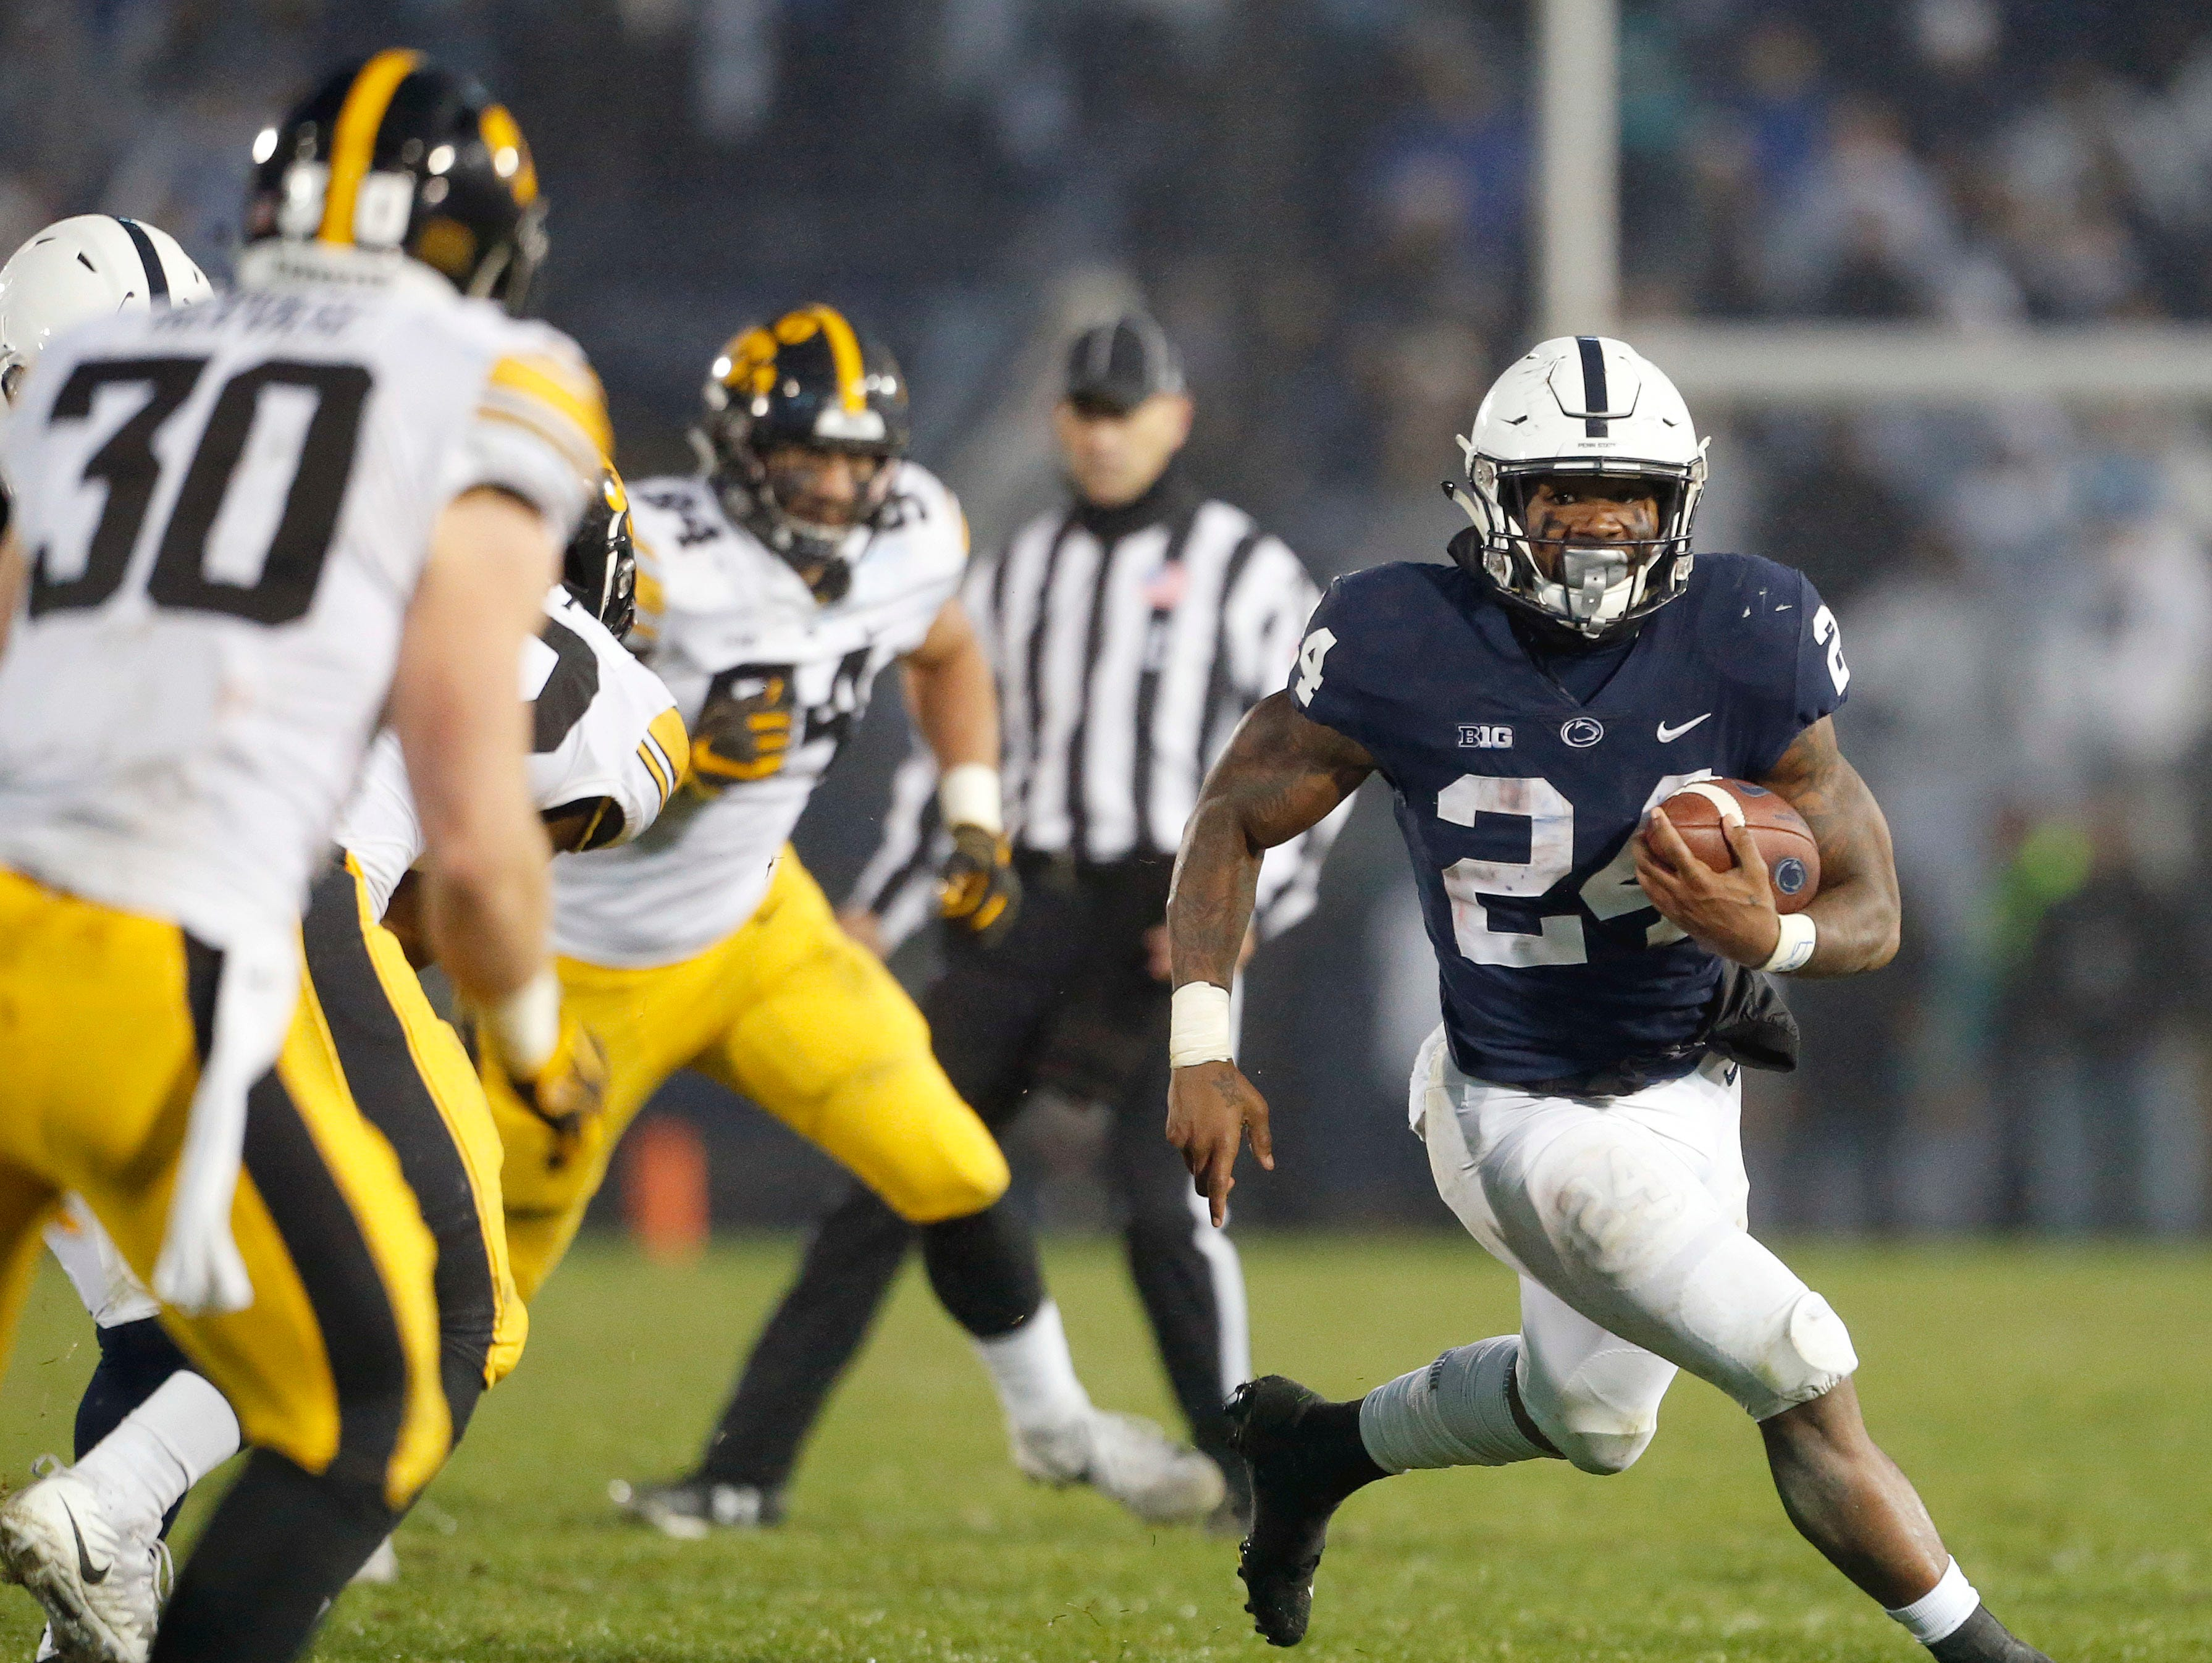 Penn State's Miles Sanders (24) runs the ball against Iowa during the second half of an NCAA college football game in State College, Pa., Saturday, Oct. 27, 2018. Penn State won 30-24. (AP Photo/Chris Knight)